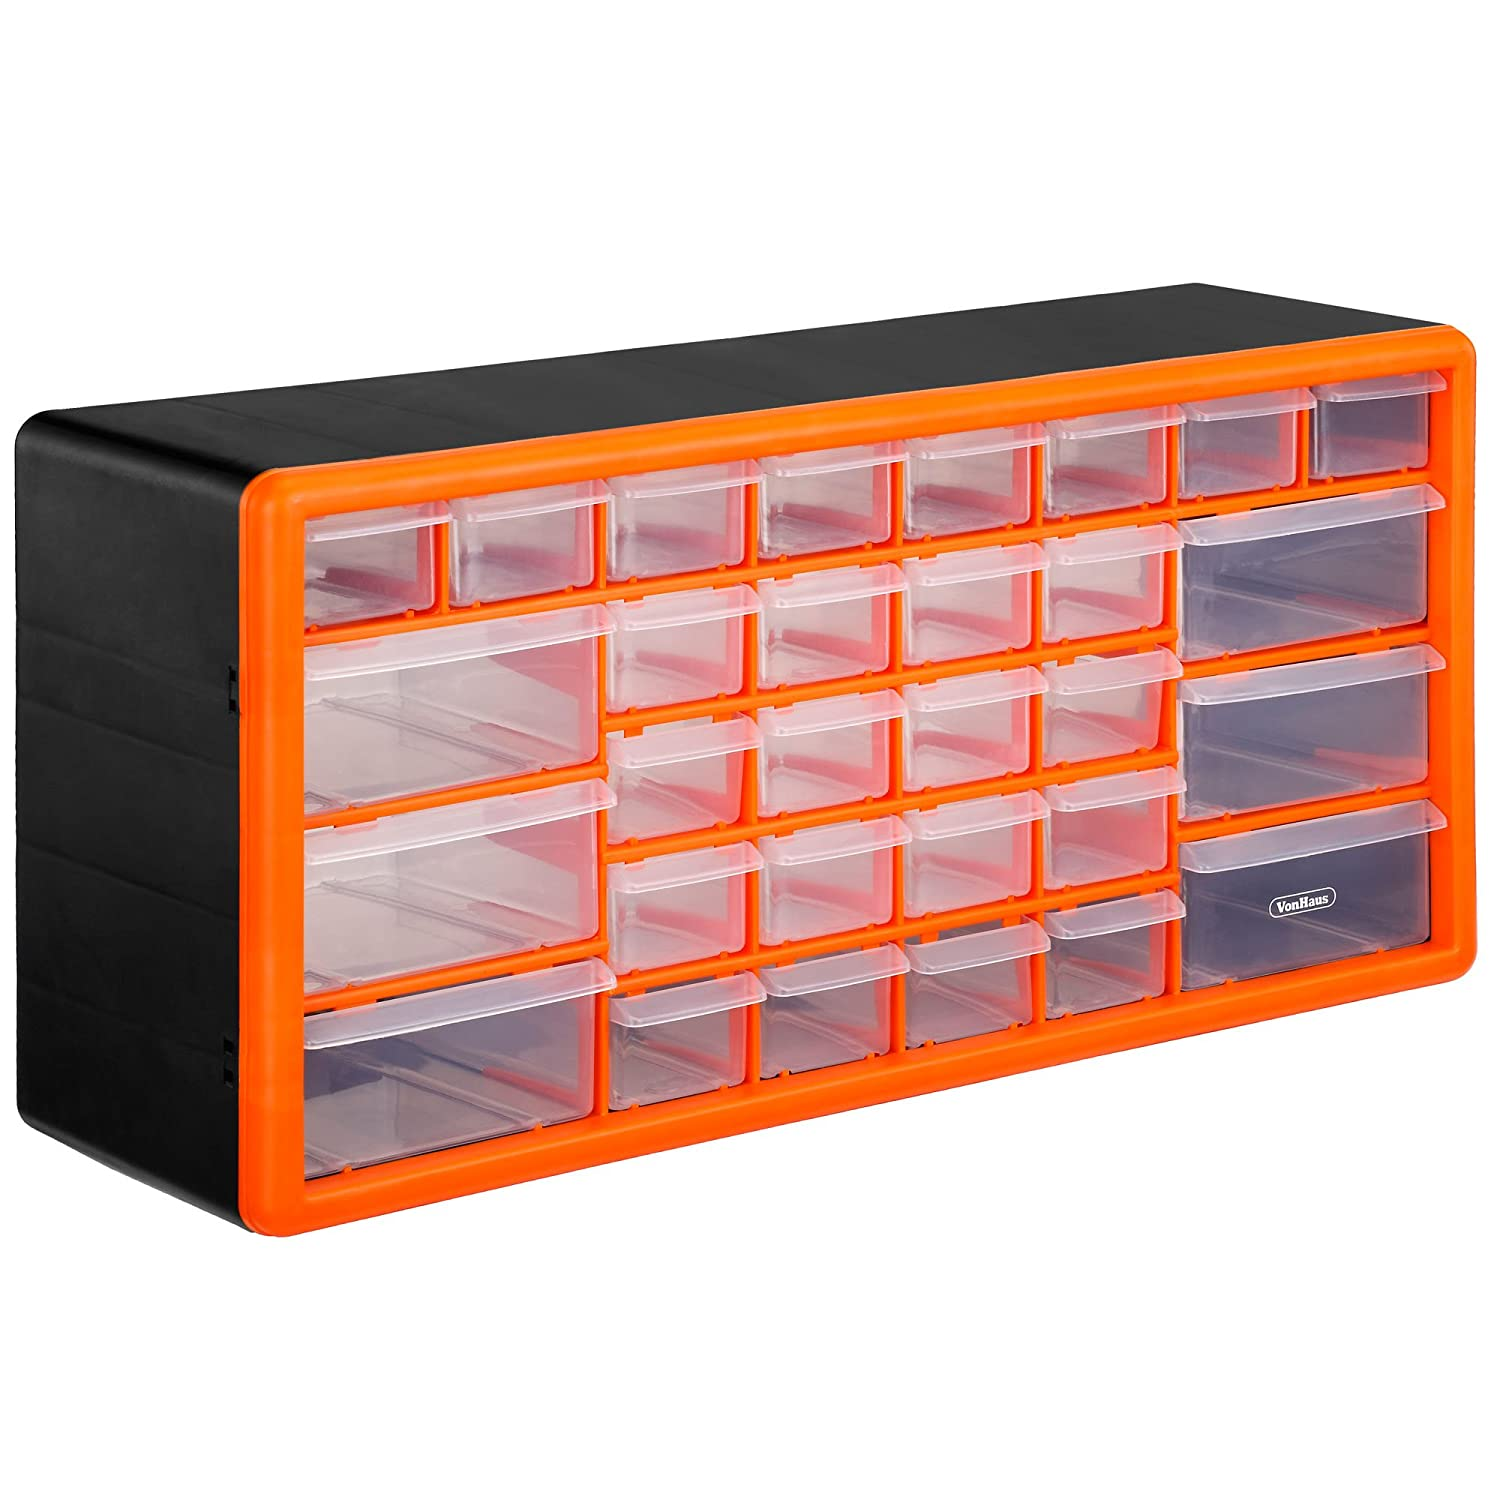 VonHaus 30 Drawer Parts Storage Organiser Cabinet: Amazon.co.uk: DIY U0026 Tools